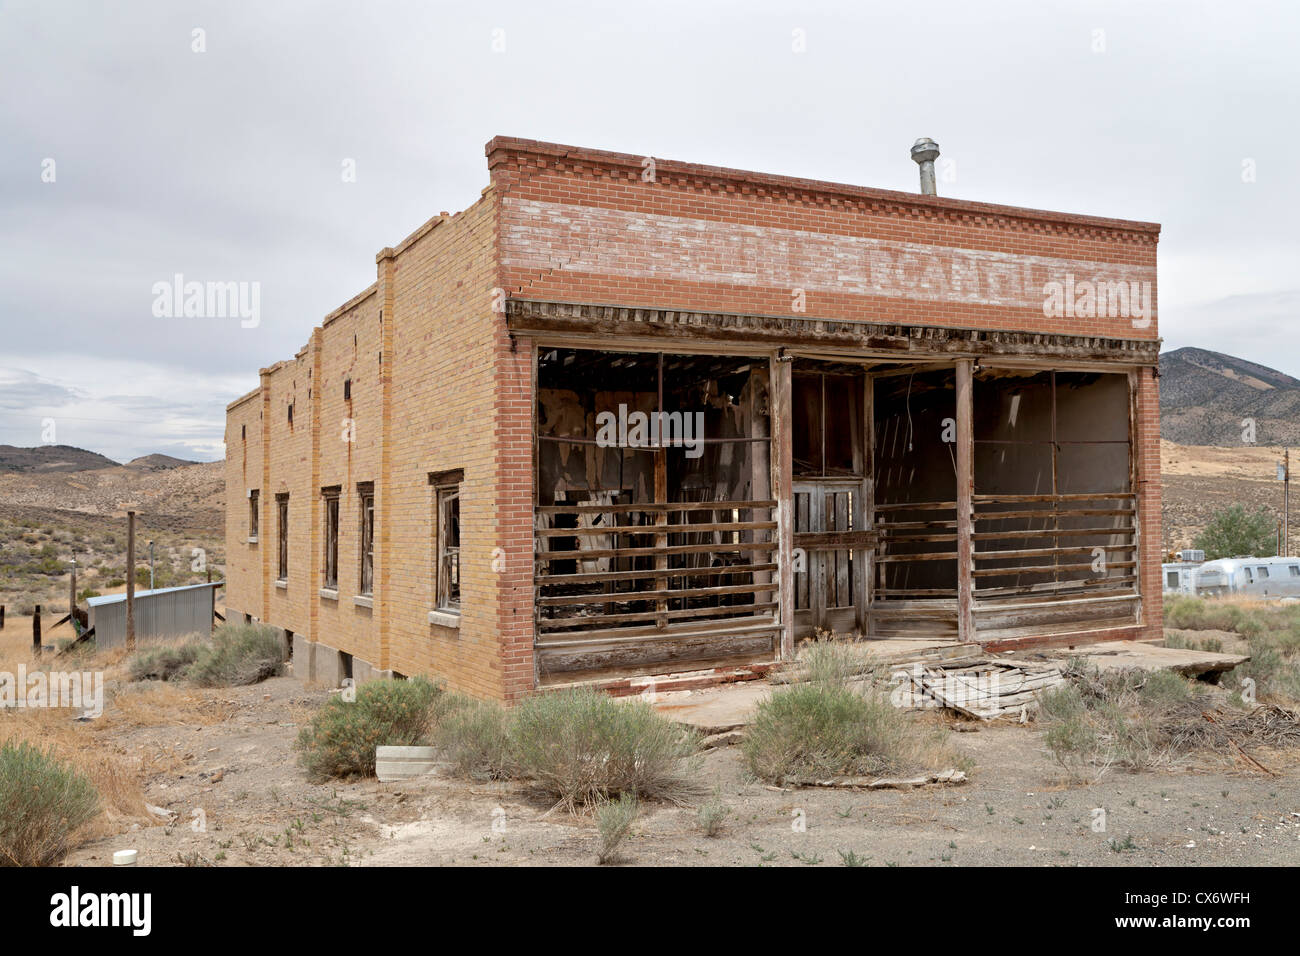 Goodwin Mercantile Building in the mining town of Gold Hill, Utah. - Stock Image